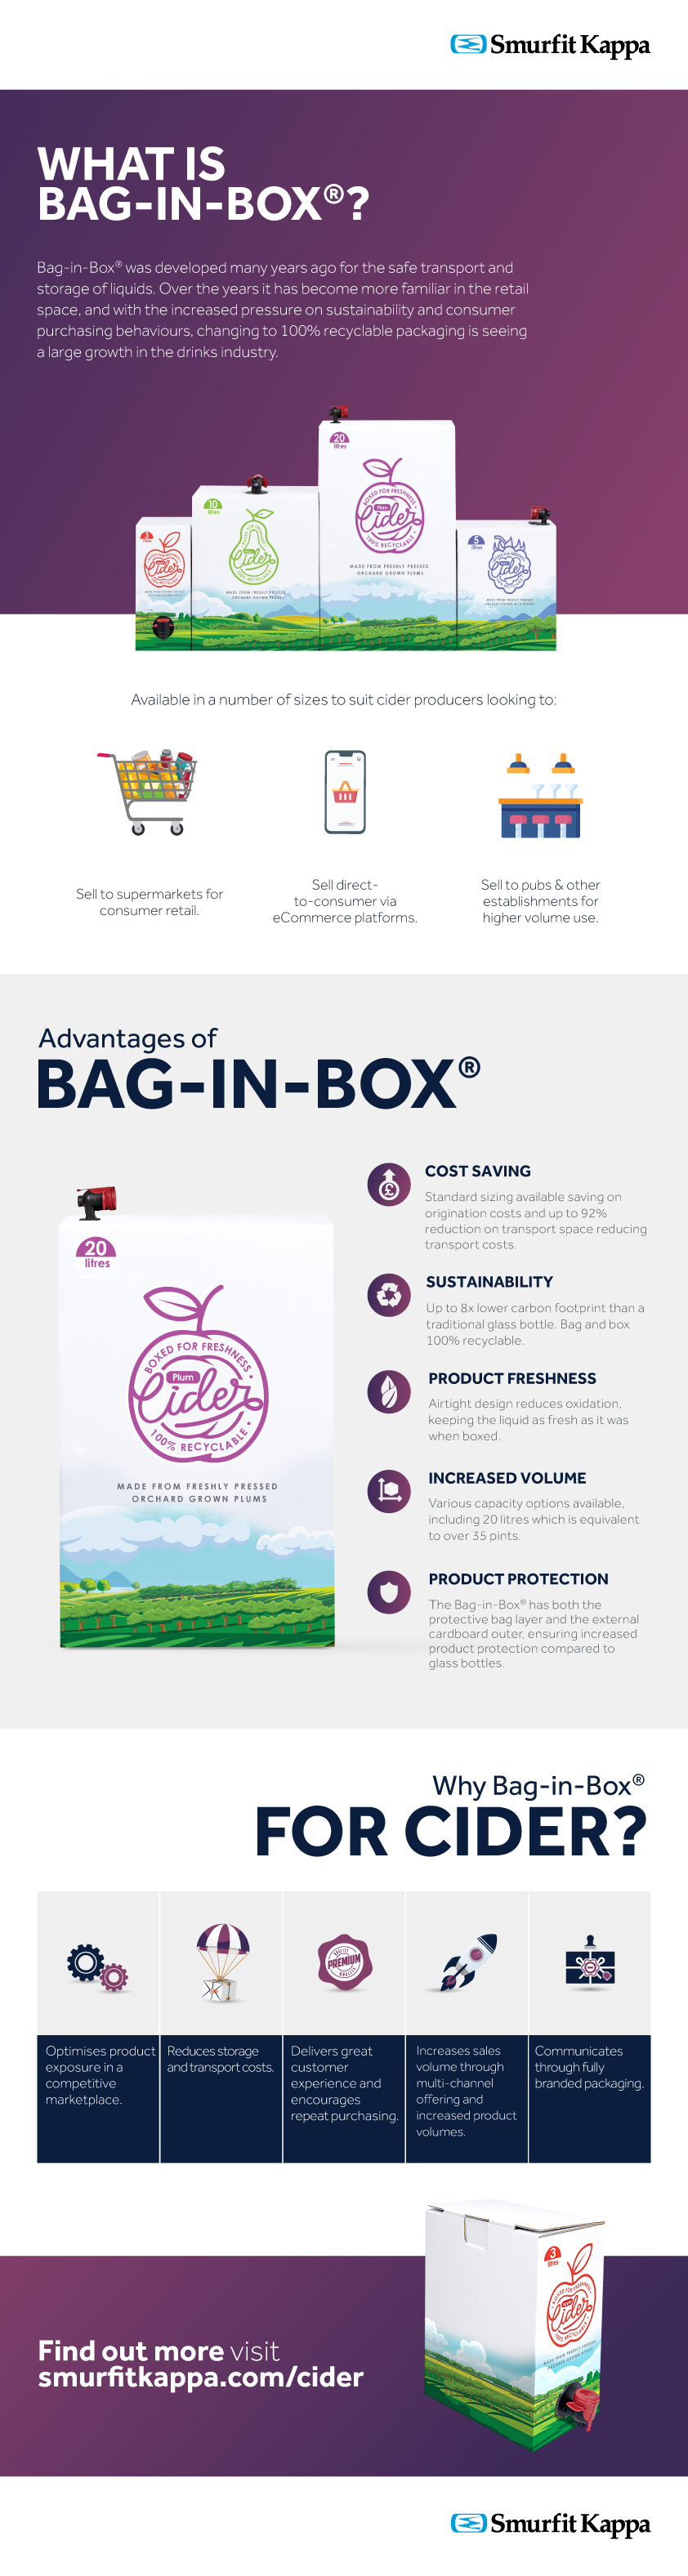 bag in box for cider infographic